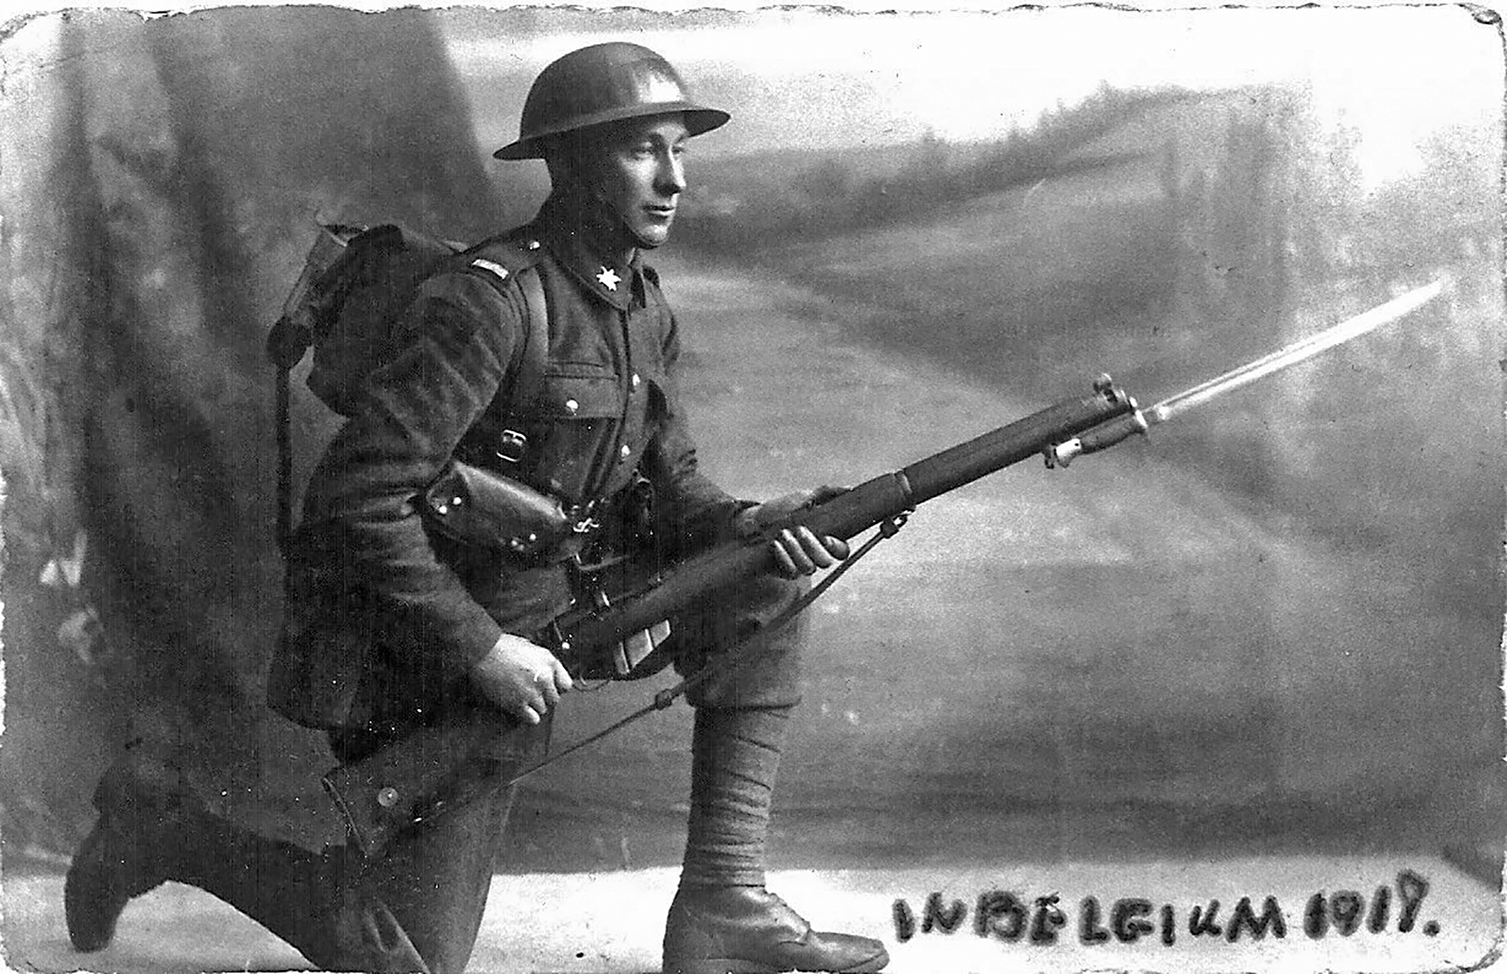 For a young fellow from the Madawaska Valley the European battlefields must have seemed like a different planet but Robert Taylor made it there and back home in one piece. Photo courtesy Barry Penhale Collection